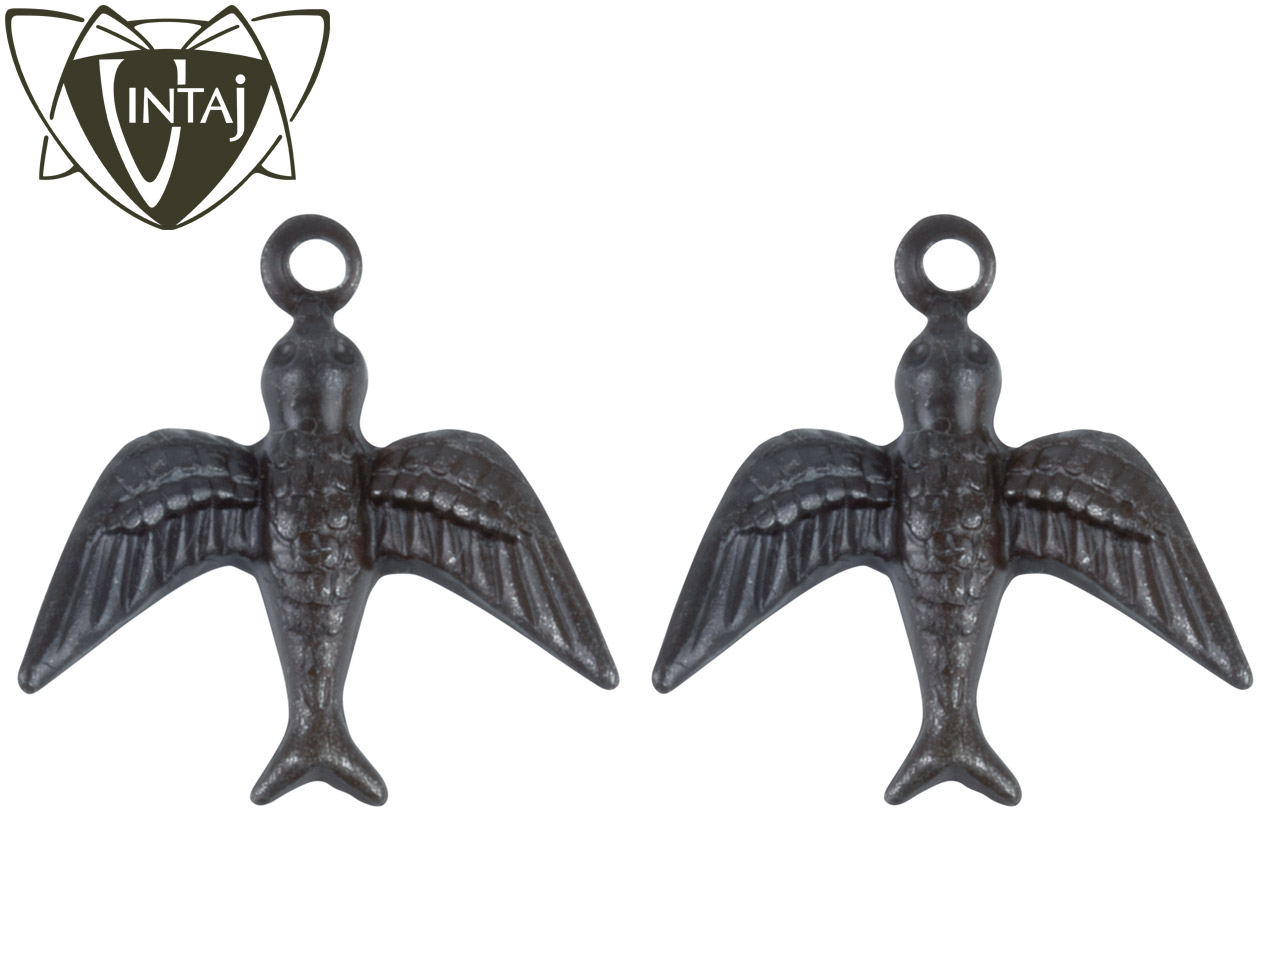 Pack of 2 Vintaj Arte Metal Watchful Bird